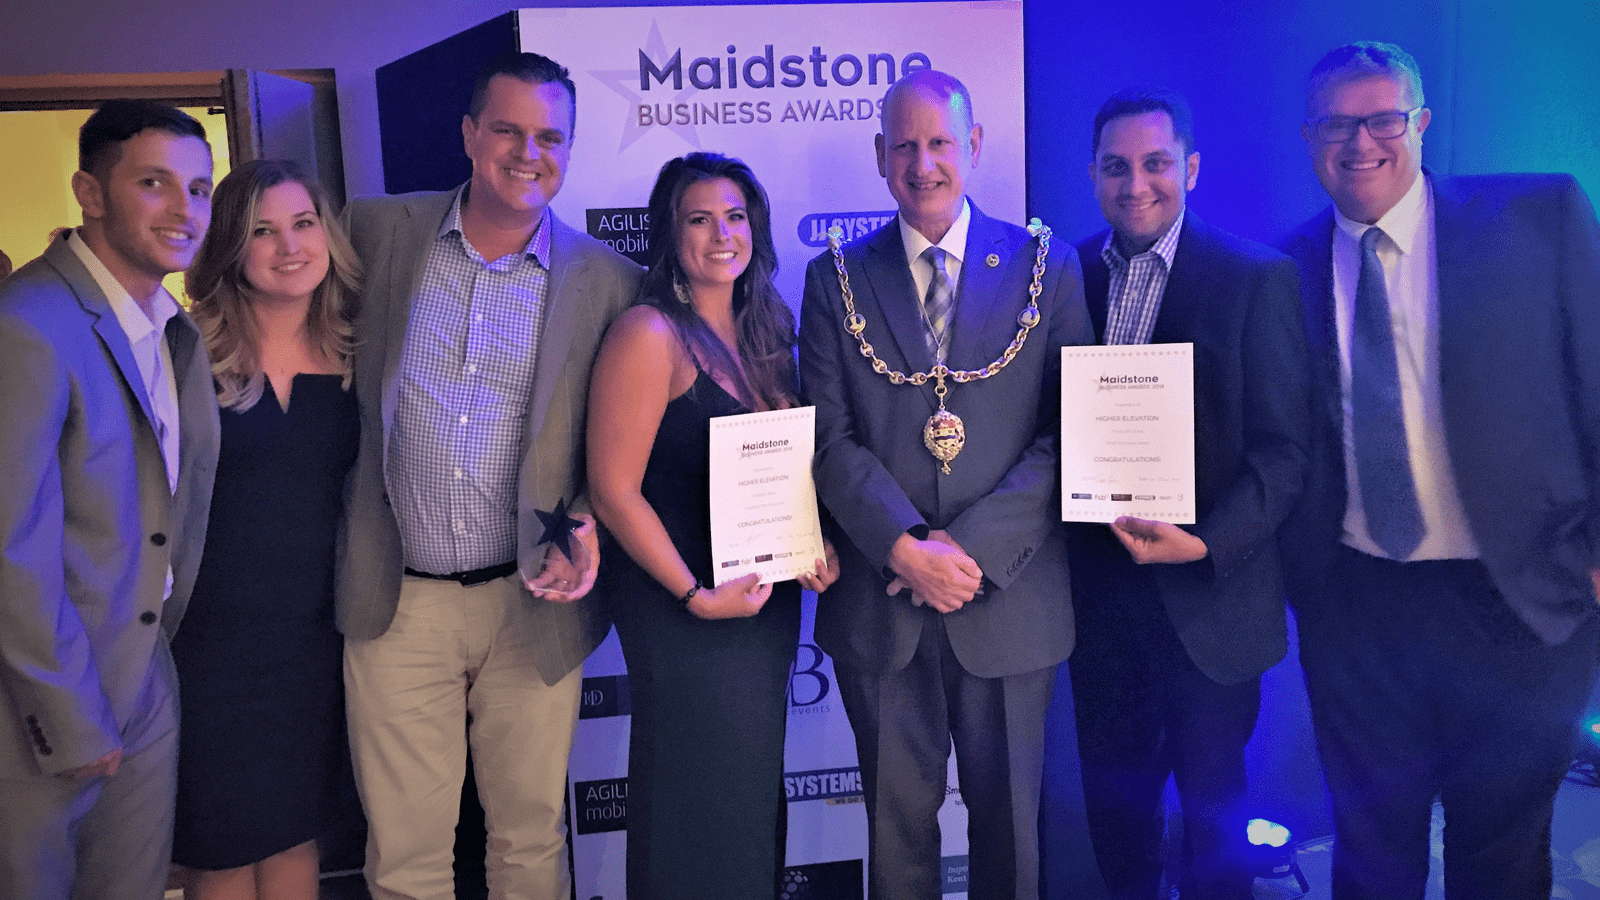 Higher Elevation Ltd Maidstone Business Awards